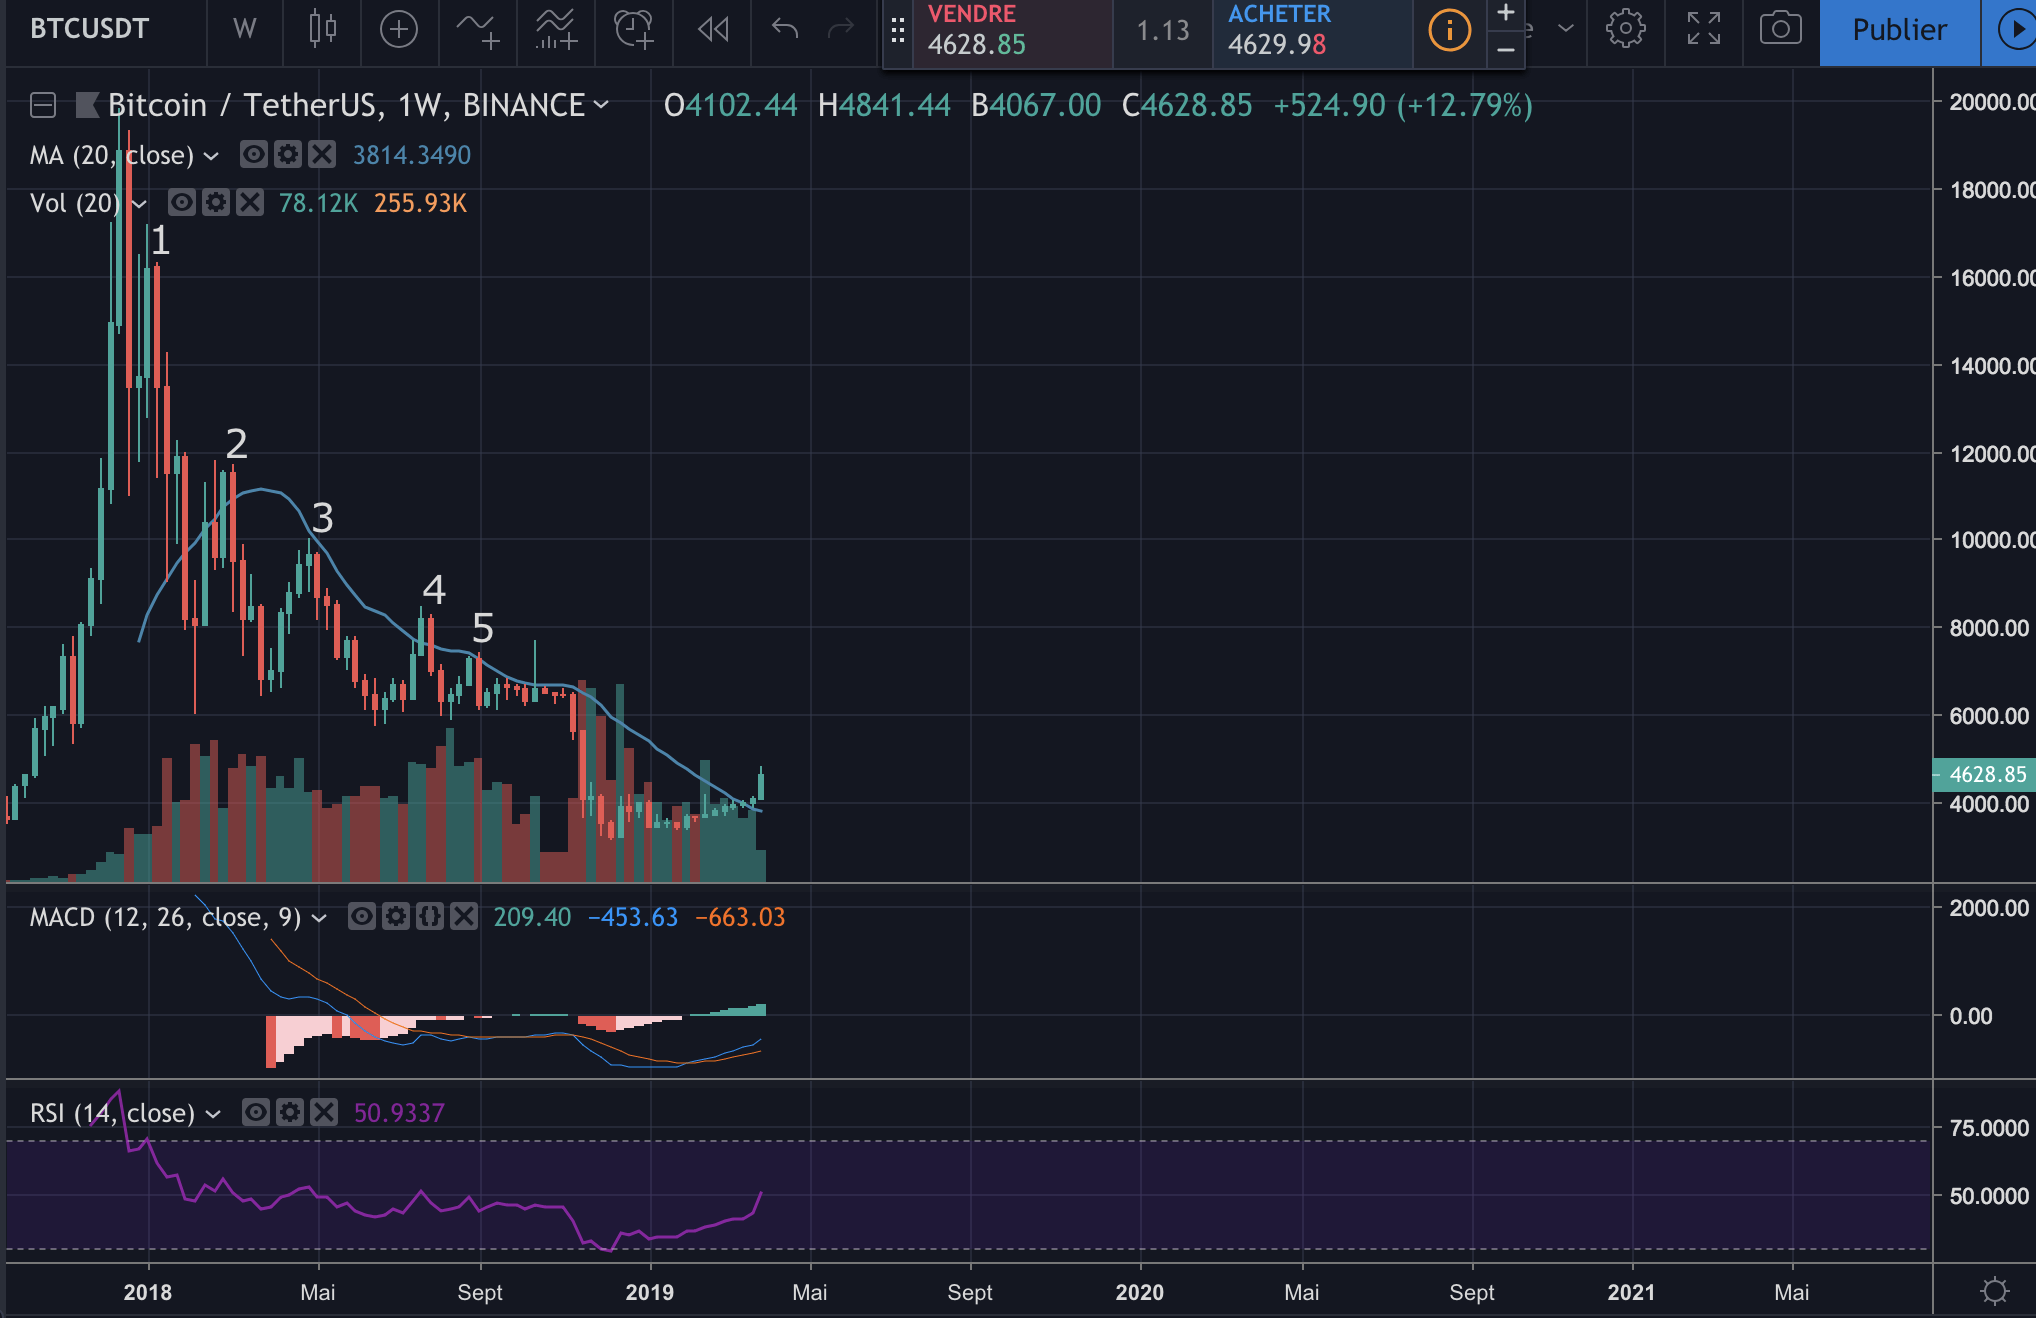 Le graphique du Bitcoin le 2 Avril 2019 en unité weekly sur Binance - Trading View